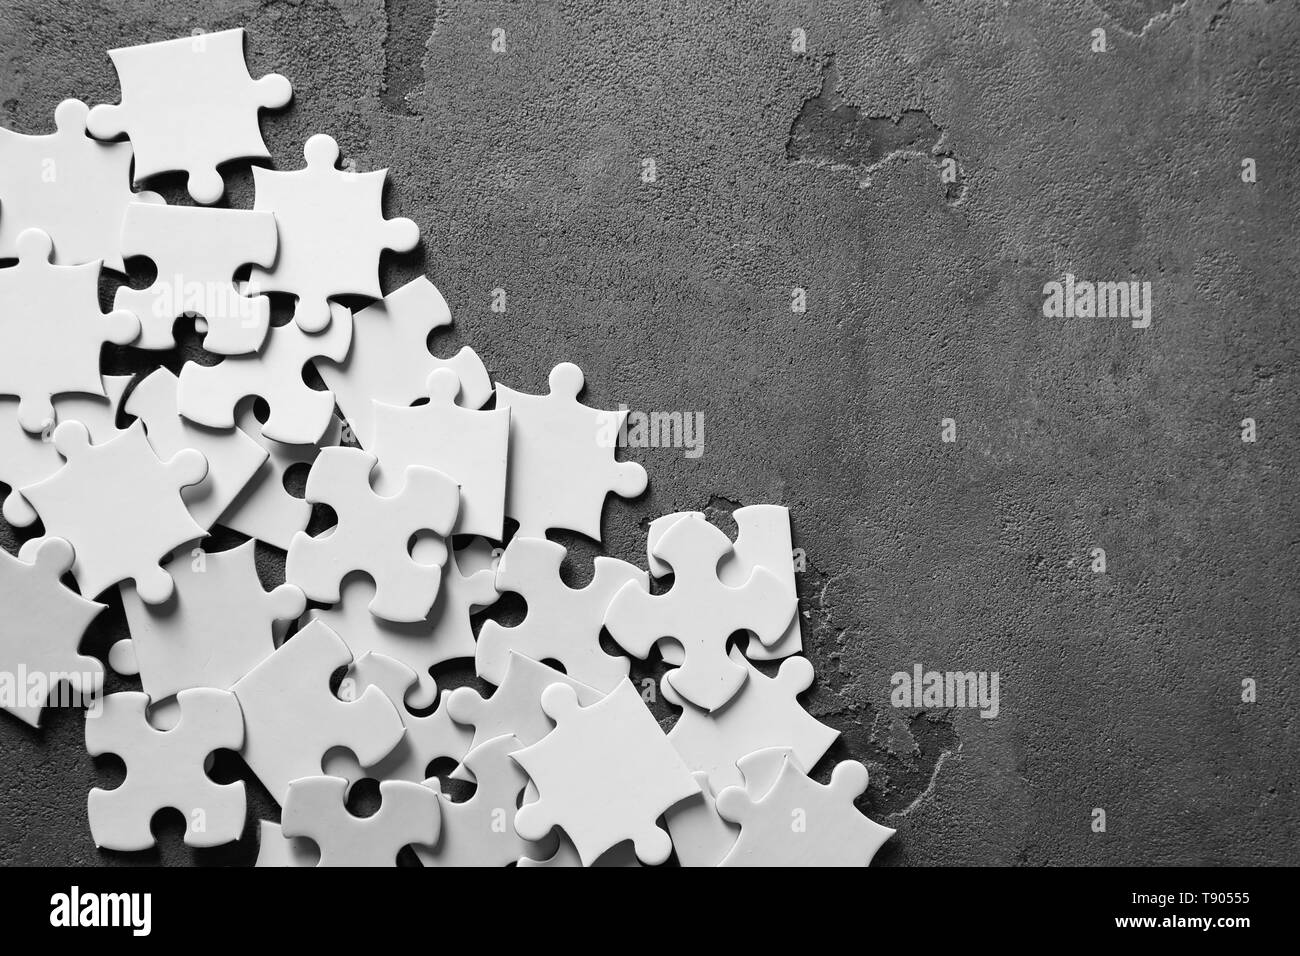 Pieces of jigsaw puzzle on grey background - Stock Image